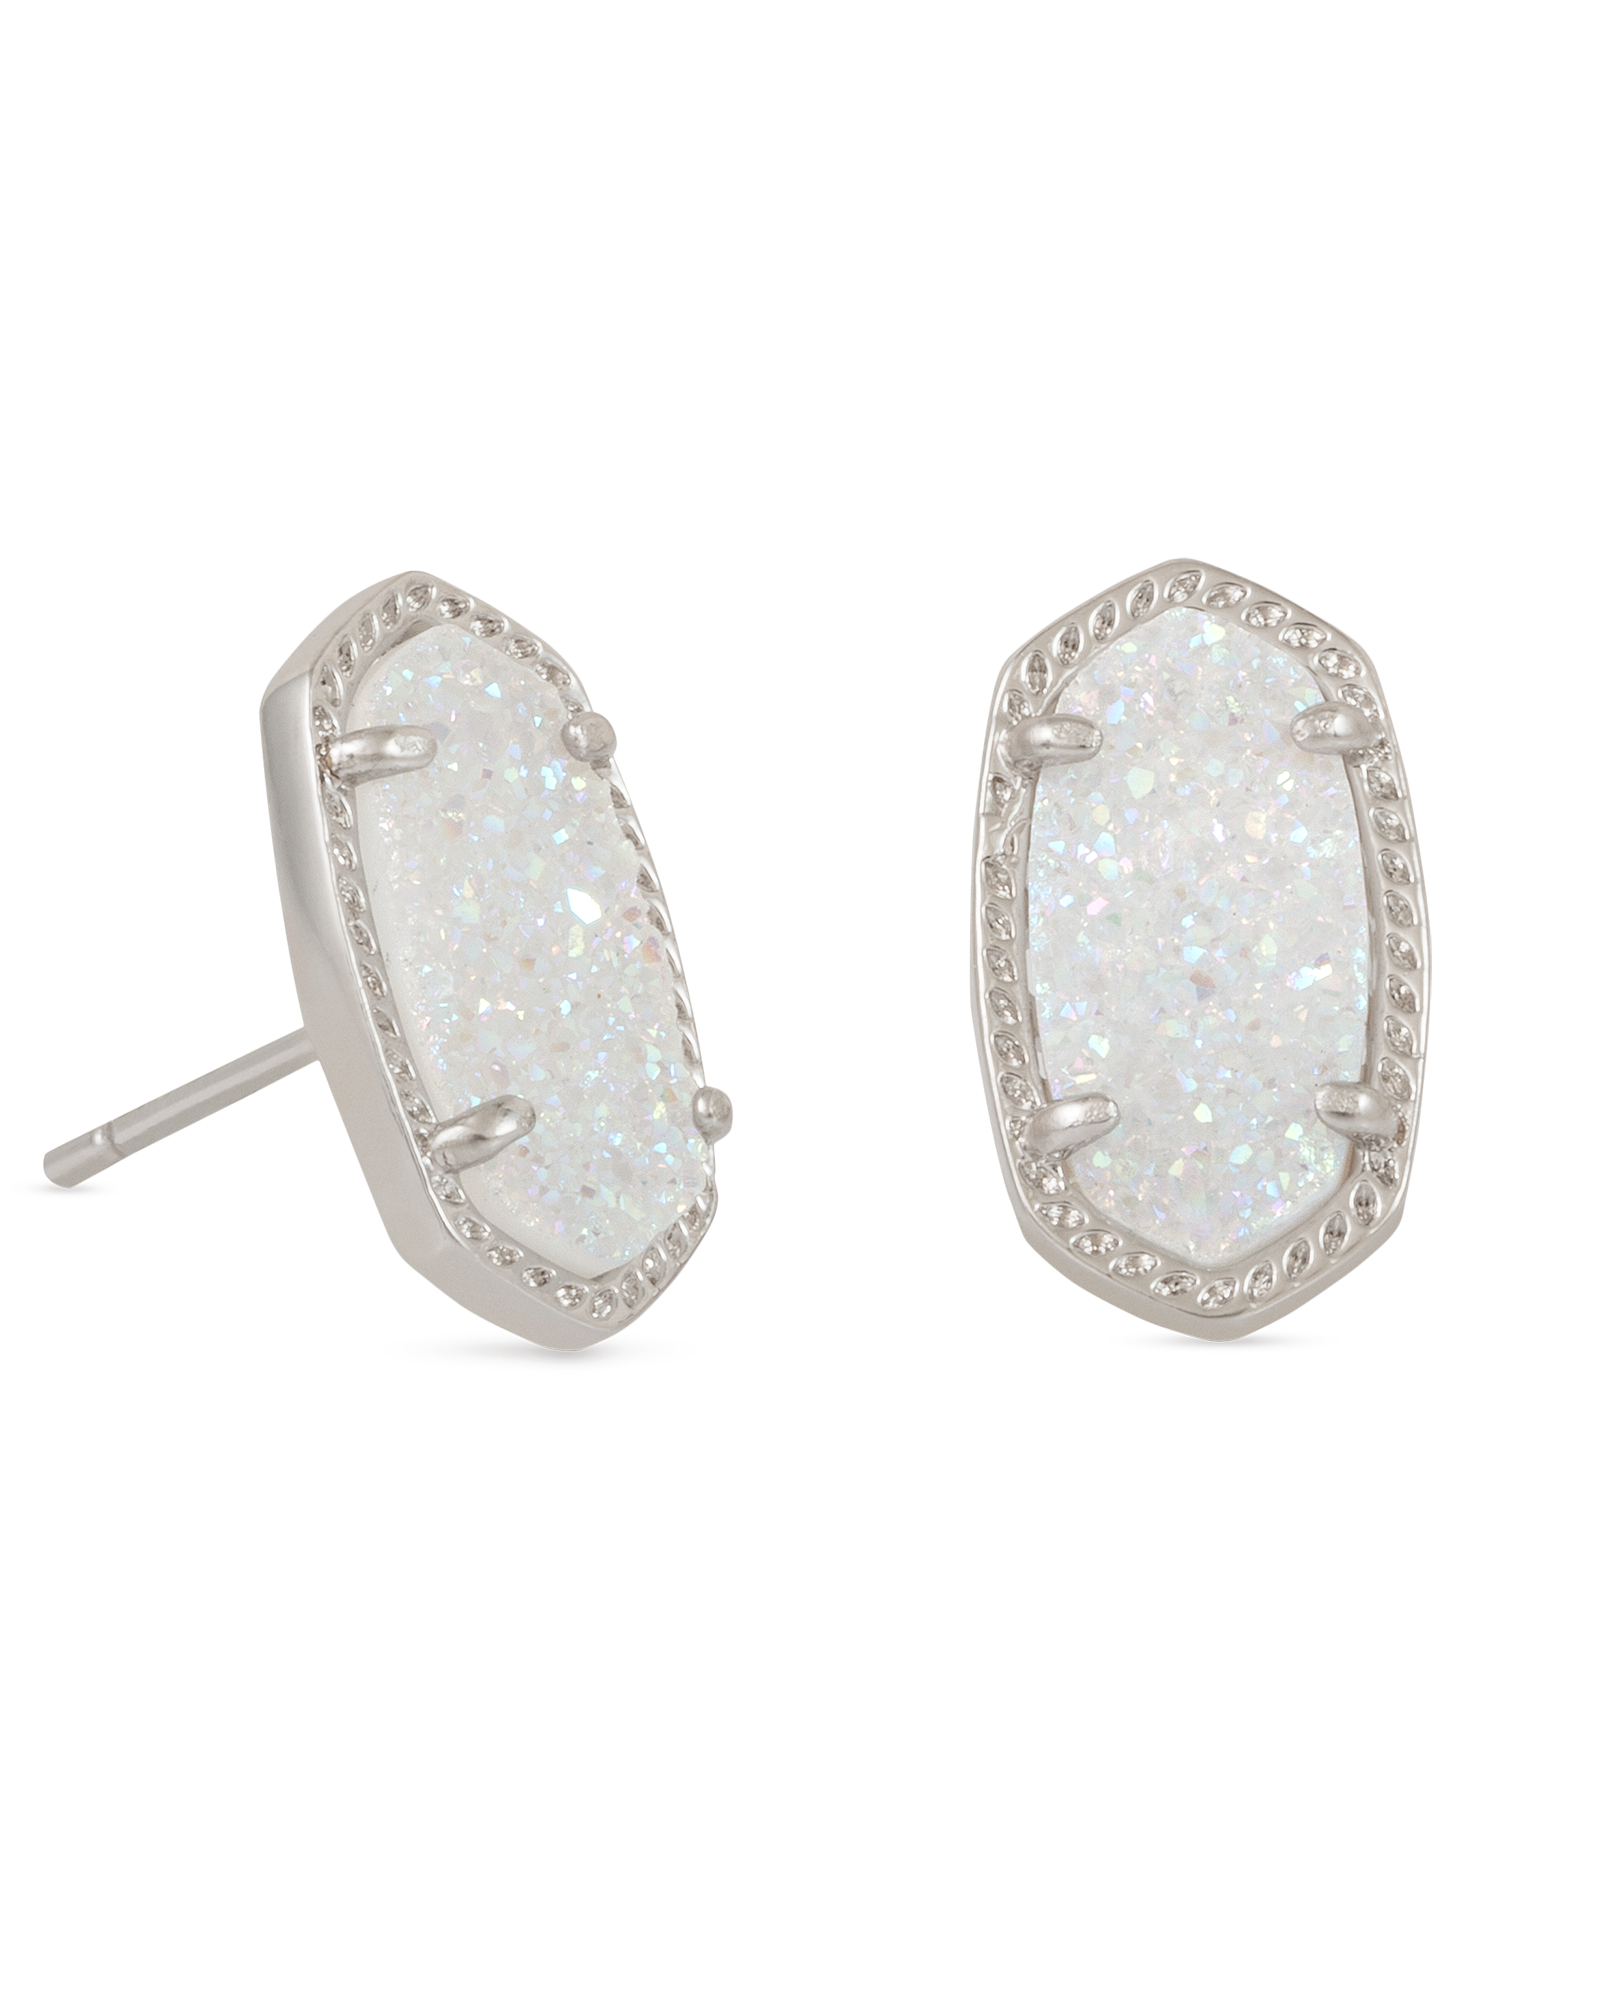 Ellie Silver Stud Earrings in Iridescent Drusy